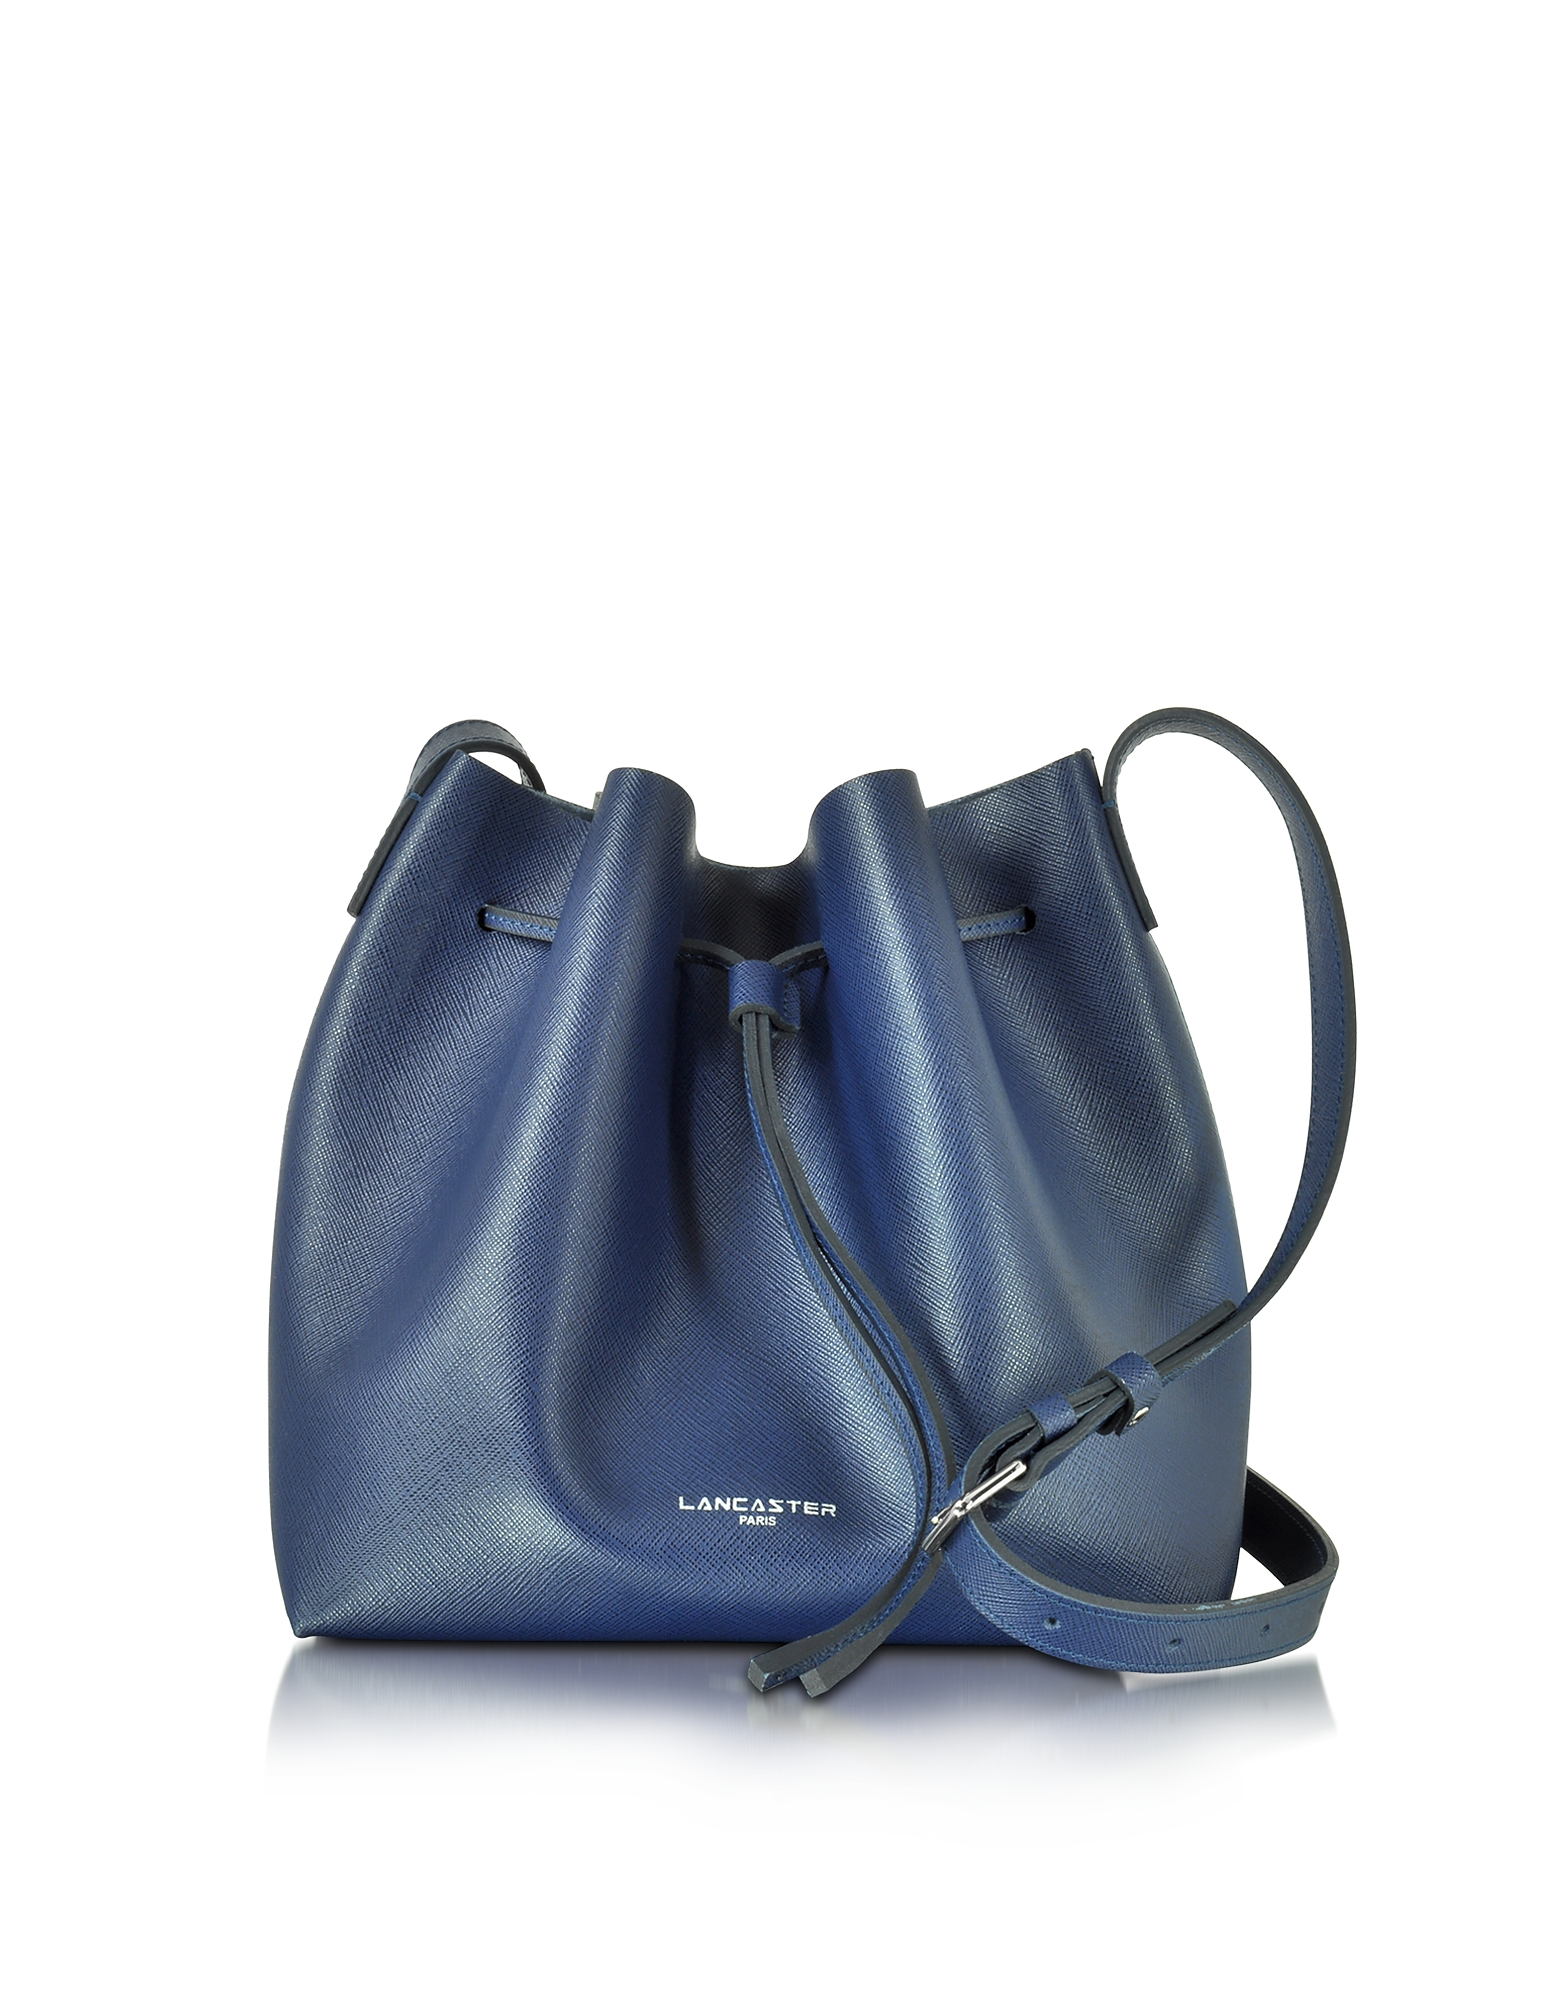 Lancaster Paris Designer Handbags, Pur & Element Saffiano Calf-Leather Bucket Bag (Luggage & Bags) photo